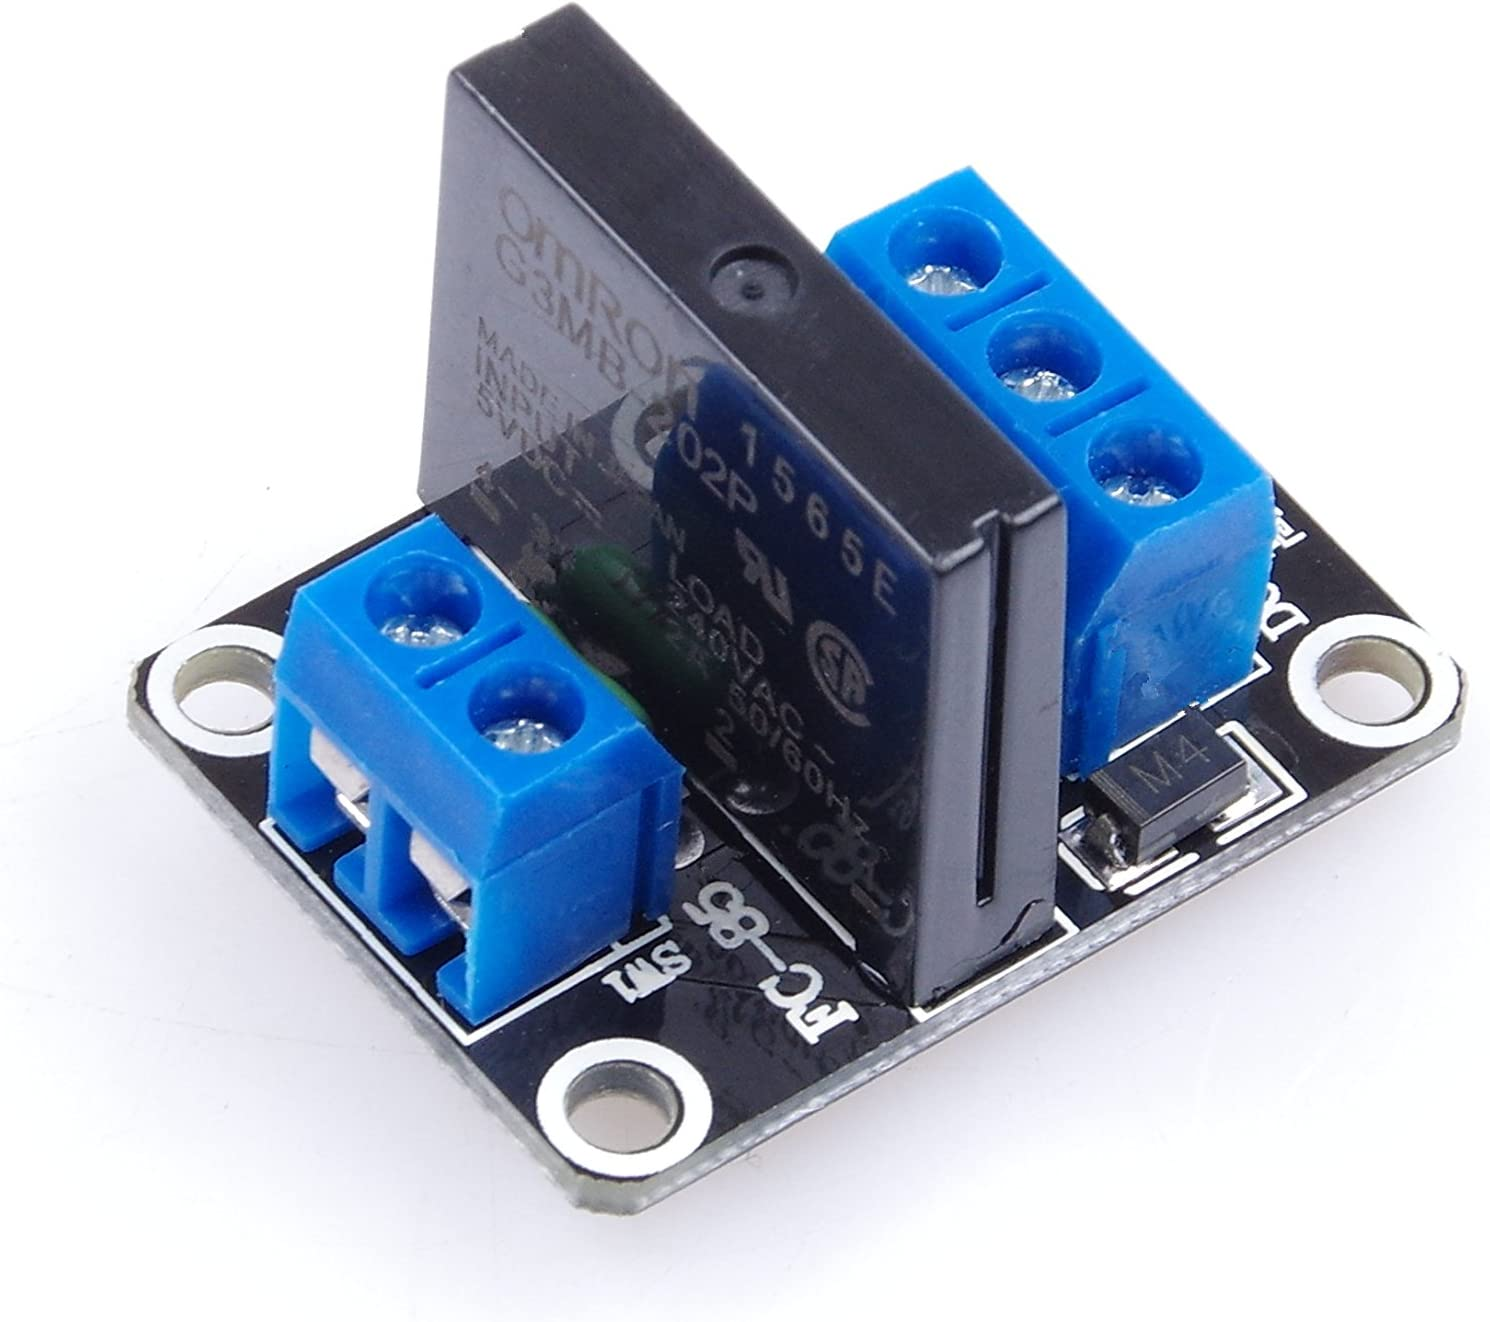 KNACRO 5V 2A 1 Channel Solid State Relay Module High Level Trigger Black for Arduino Uno Duemilanove MEGA2560 MEGA1280 ARM DSP PIC (DC 5V, 1-Channel)